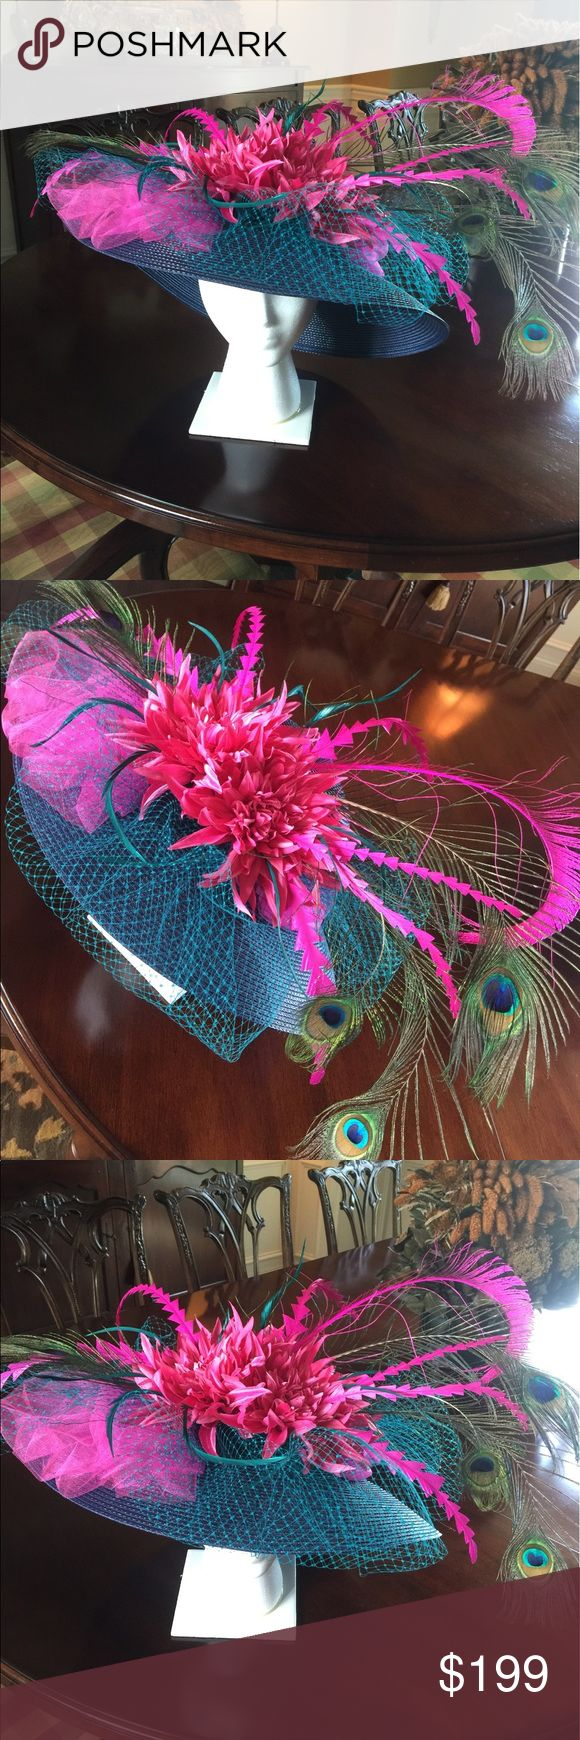 Derby wide brim hat. KY Derby navy and pink wide brimmed hat. Worn once to the derby and made by yours truly! This hat is gorgeous on!!! No trades or lowballs please. Accessories Hats